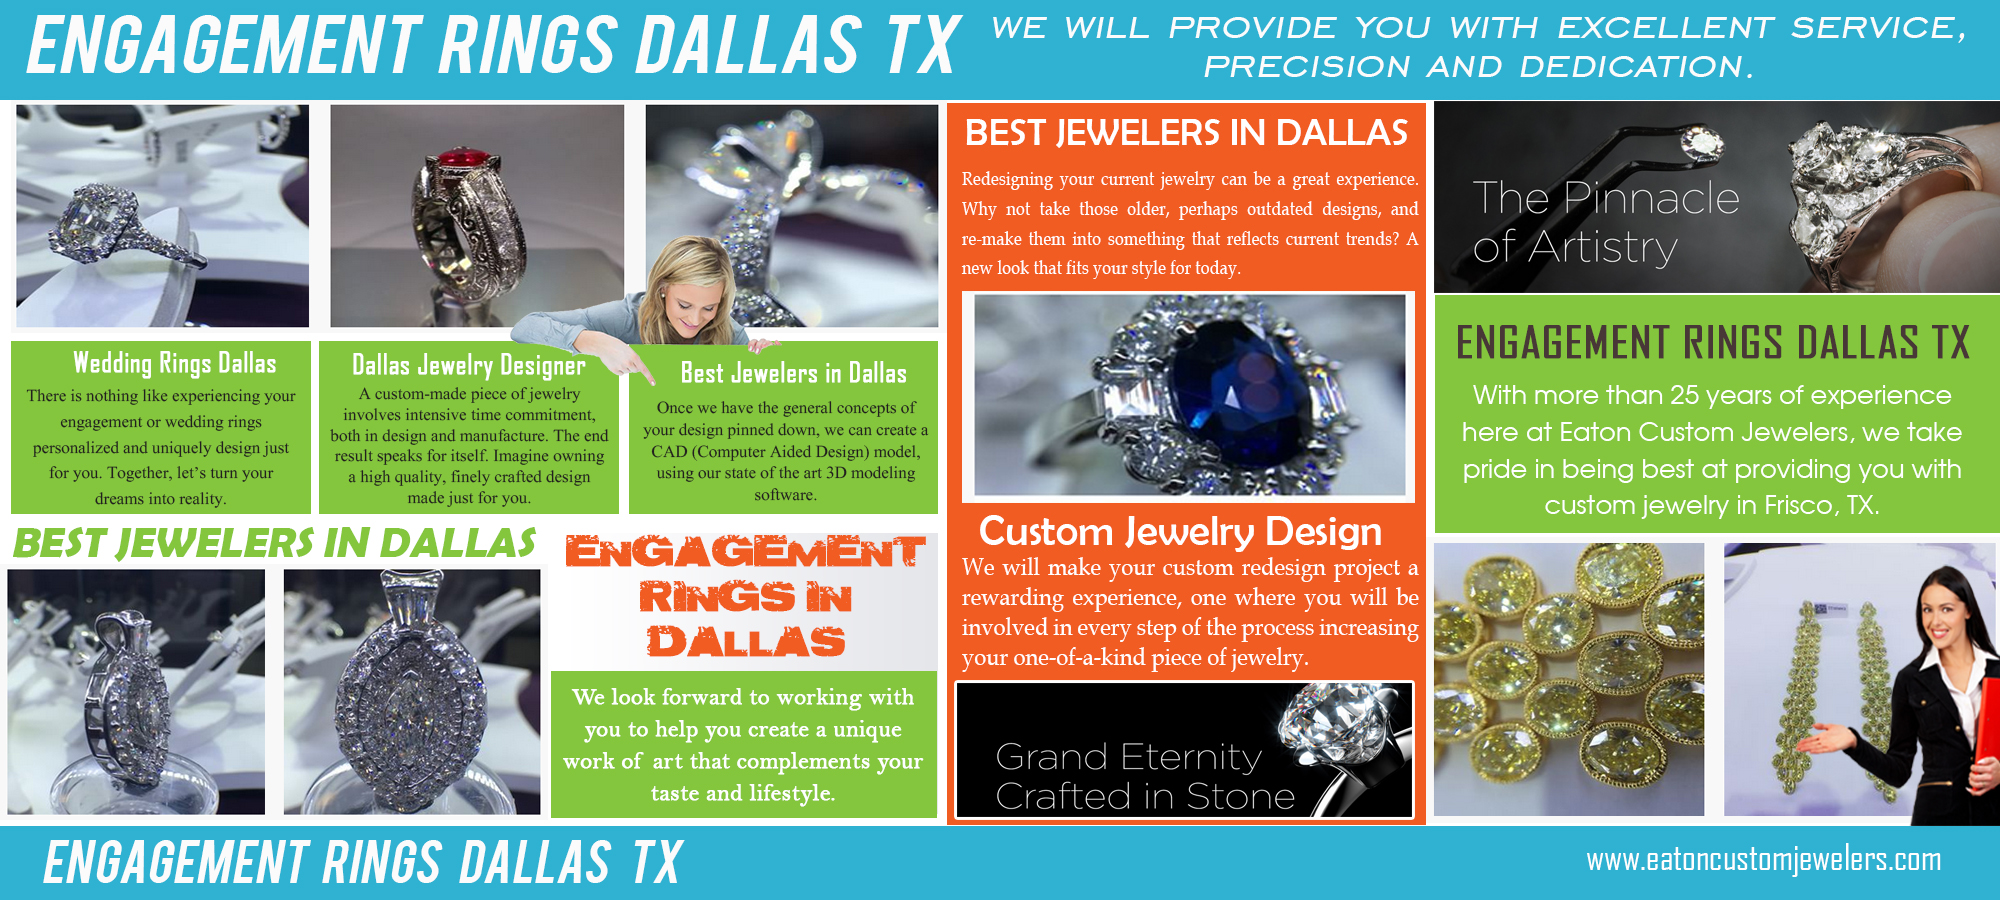 Engagement rings in dallas social social social social for Jewelry stores plano tx